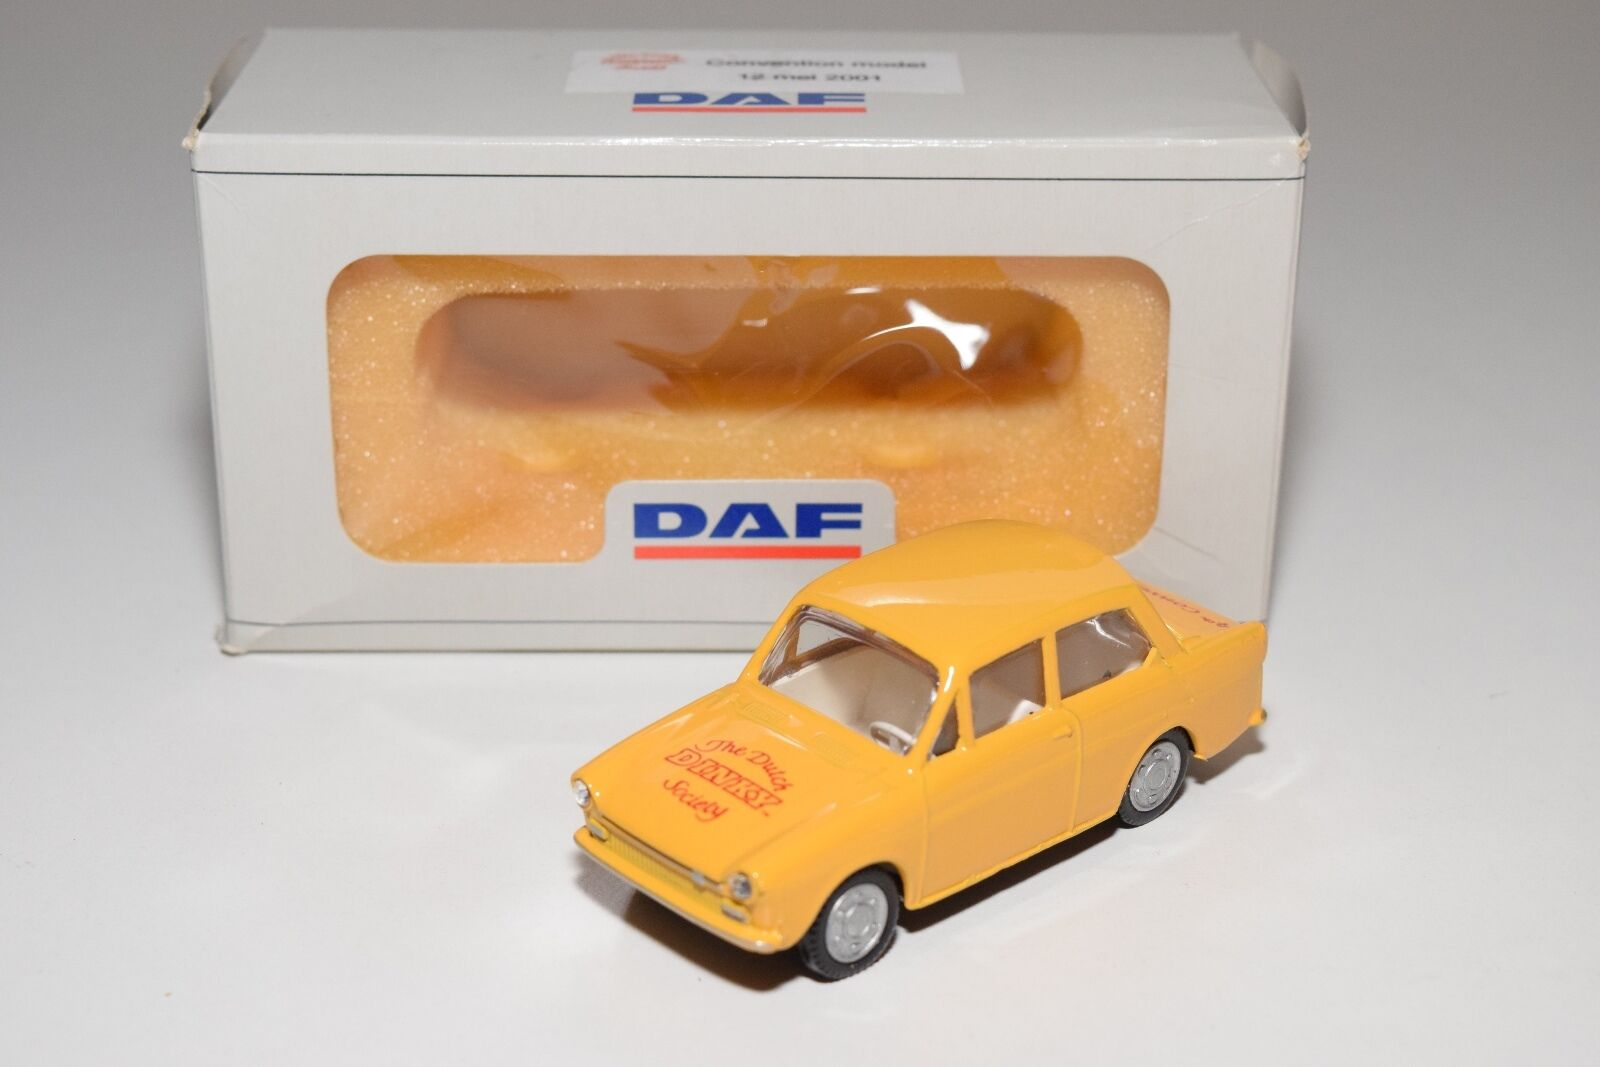 LION CAR TOYS DAF VARIOMATIC THE DUTCH DINKY SOCIETY 4TH CONVENTION MINT BOXED